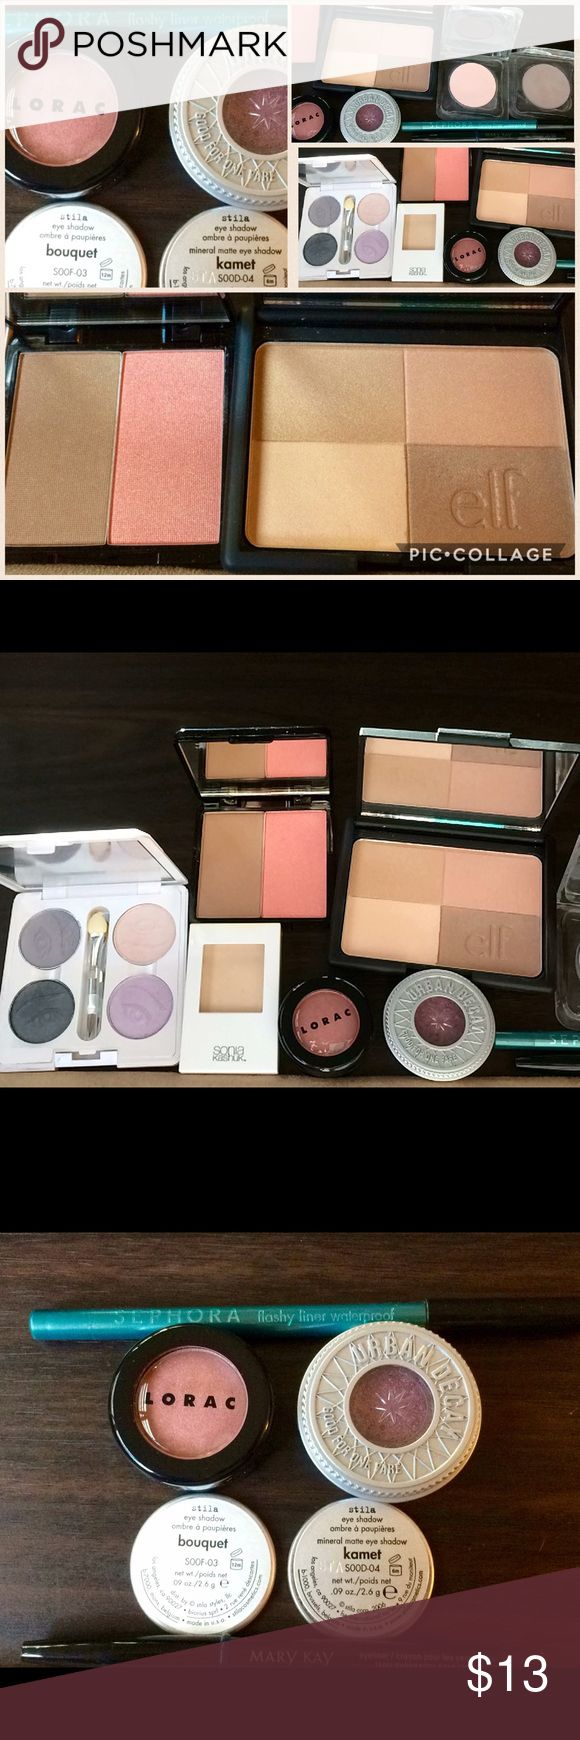 Makeup Lot Sephora •Urban Decay •Lorac •Stila •elf Makeup lot at an amazing price-point! Full sized. Mostly swatched or lightly tested. All included as pictured. •Sonia Kashuk eyeshadow- Bone• Sephora waterproof  eyeliner- flashy green• Mary Kay eyeliner- Navy• Lorac eyeshadow- Rose• Urban Decay eyeshadow- Last Call• Stila Mineral Matte eye shadows- Bouquet & Kamet• Elf Golden Bronzer• Your Best Friend- Golden gleam bronzer & baby pink blush duo• Elf eyeshadow quad• Check out other makeup…